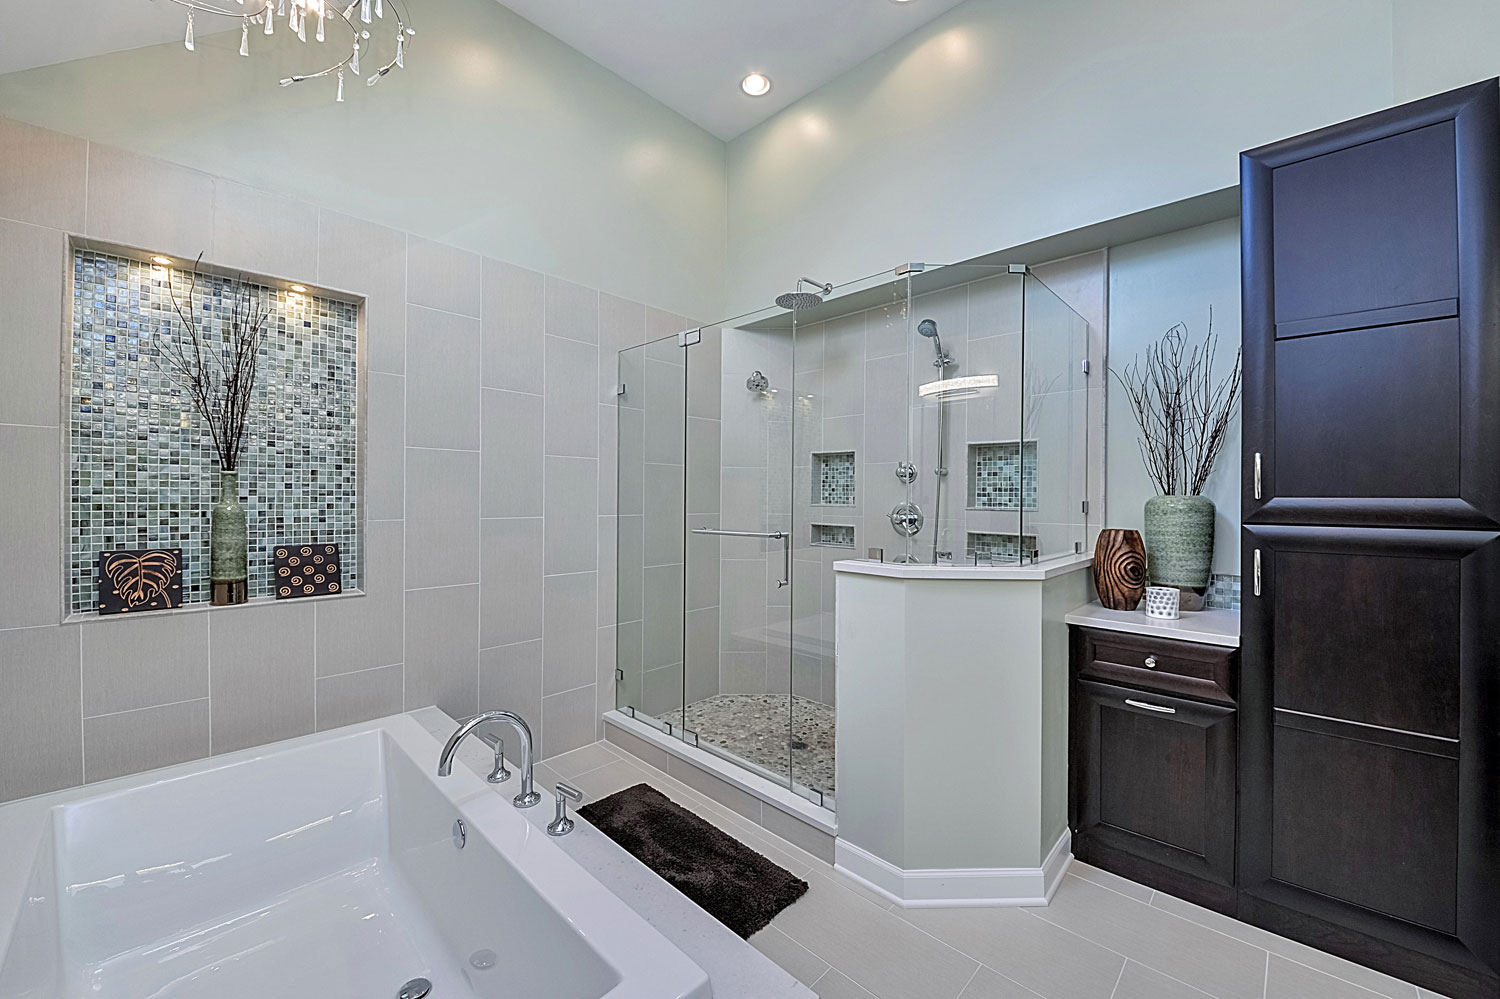 Steve Nicolle 39 S Master Bathroom Remodel Pictures Home Remodeling Contractors Sebring Services